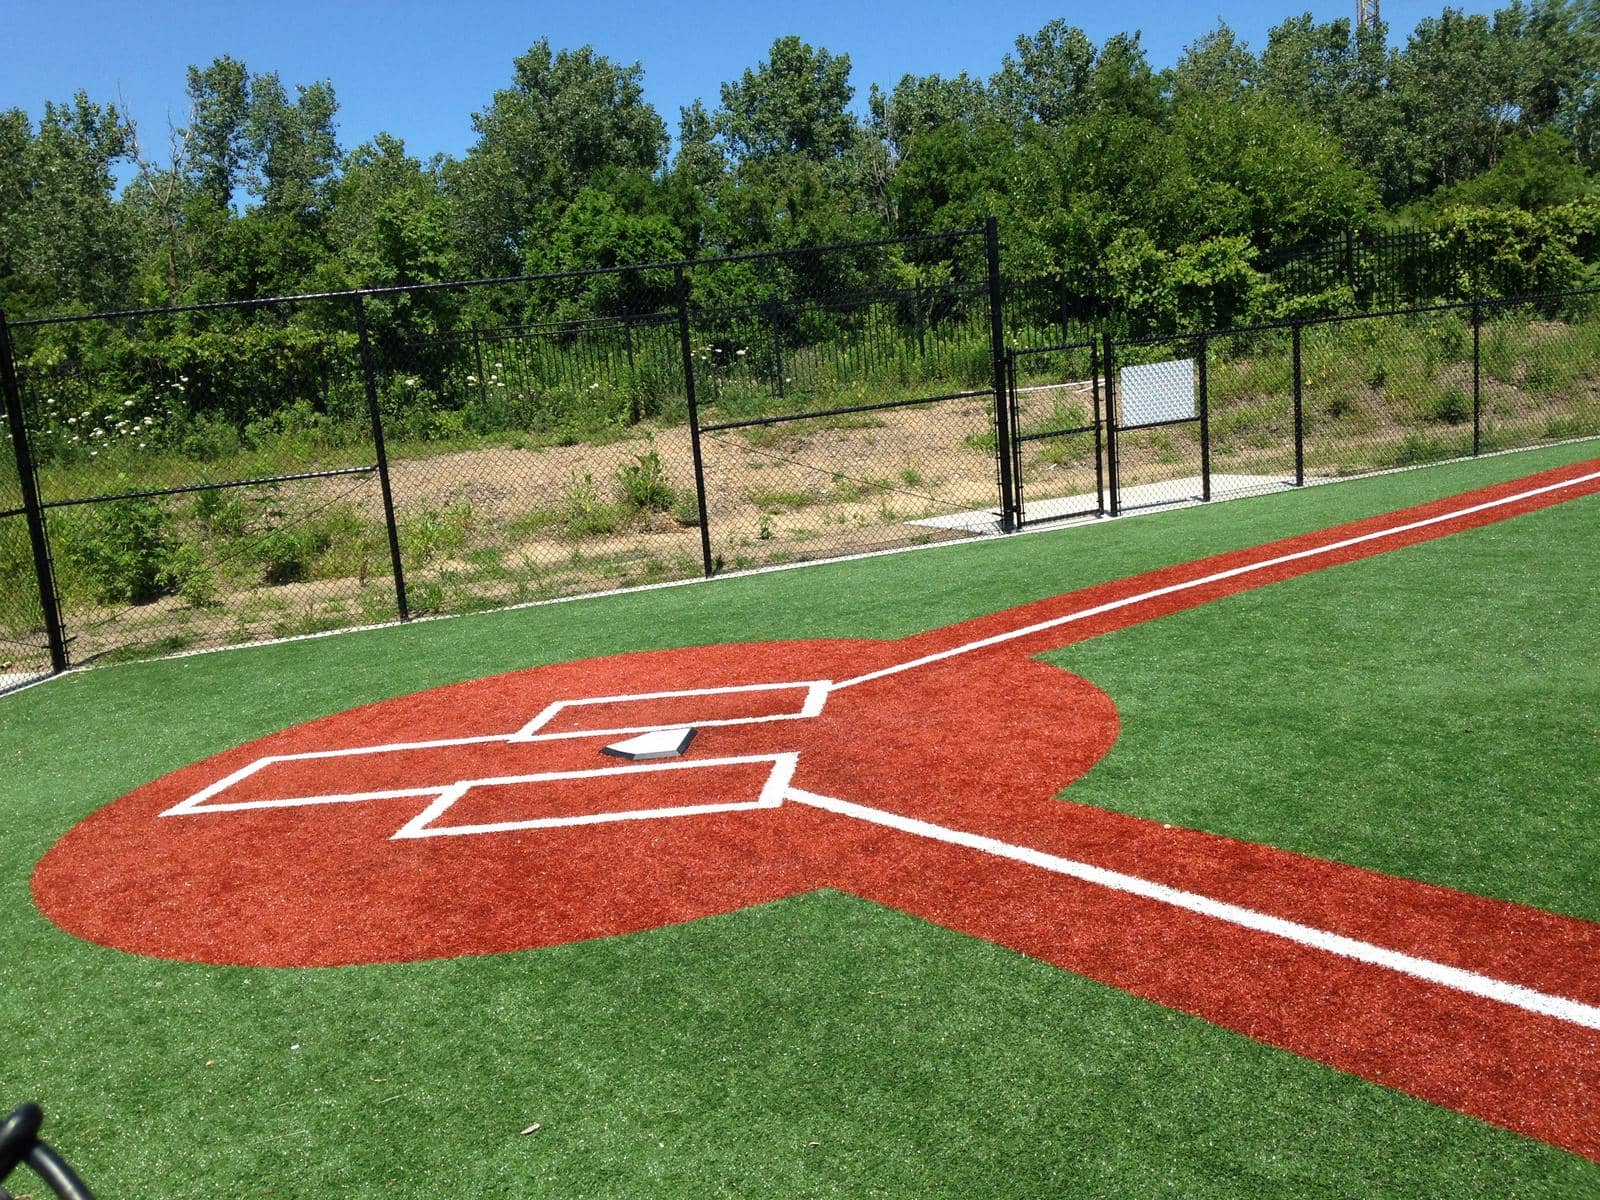 home base for T-ball field